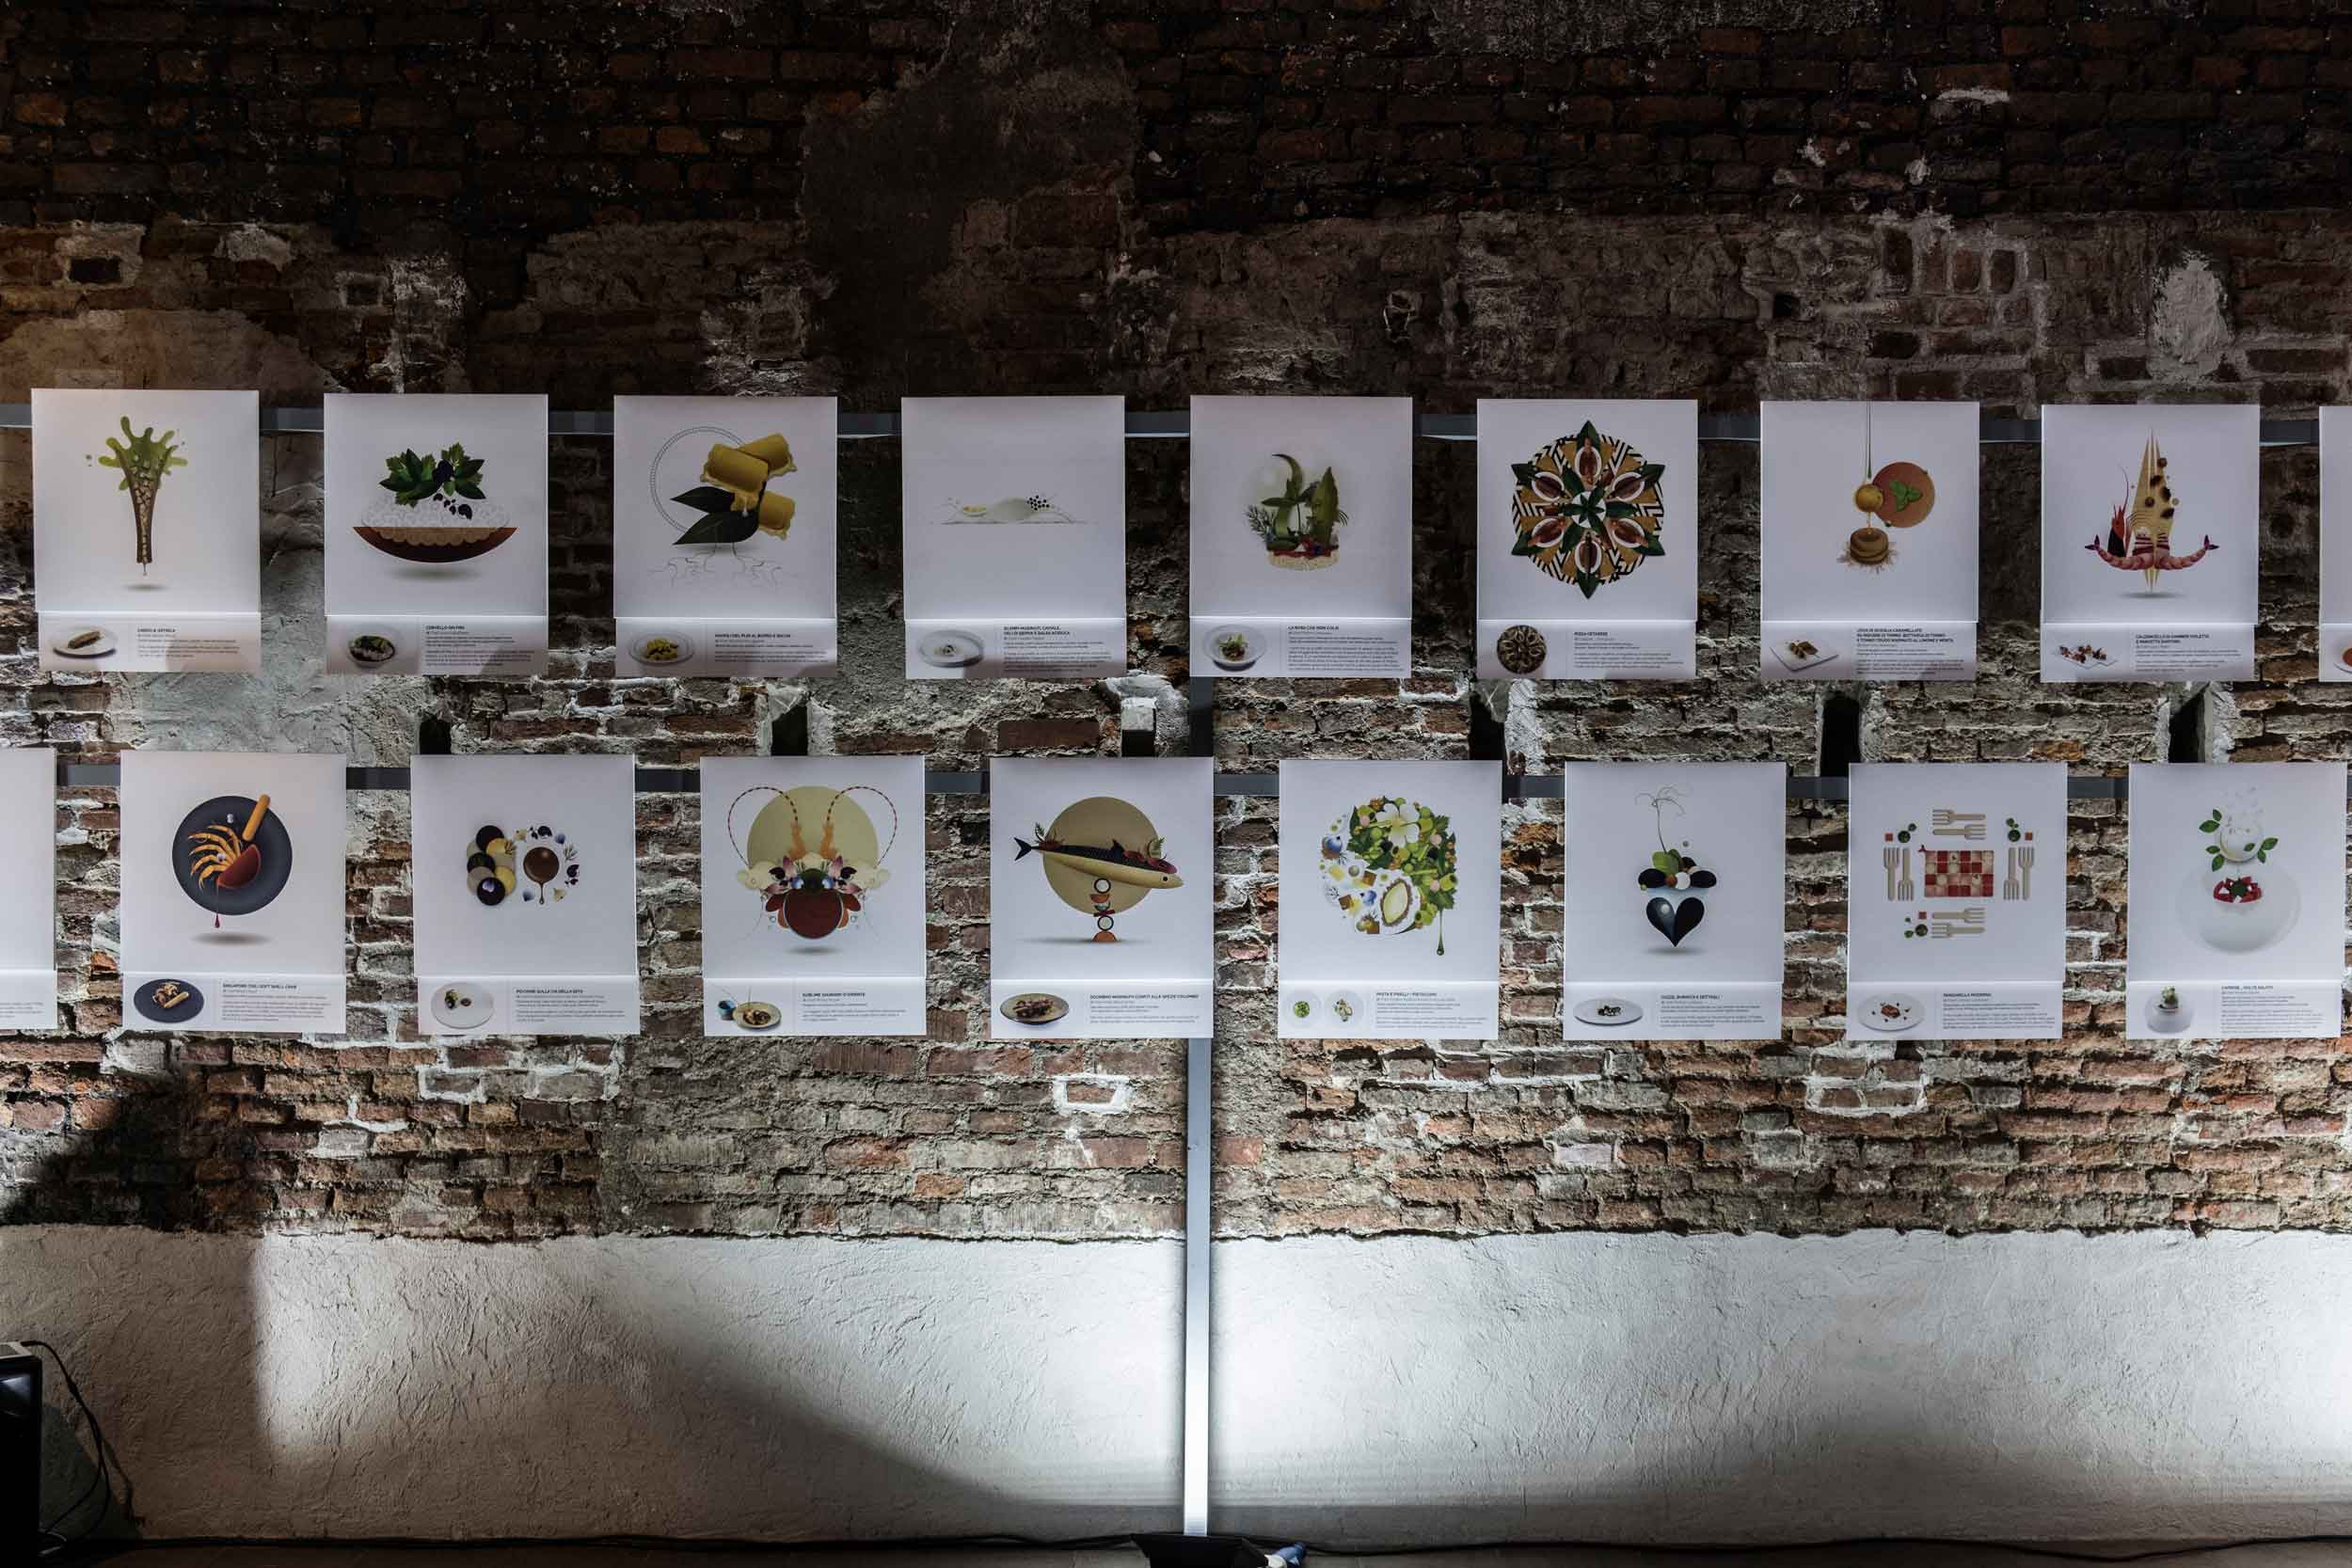 Sublime food design ricette in cibografica mostra A